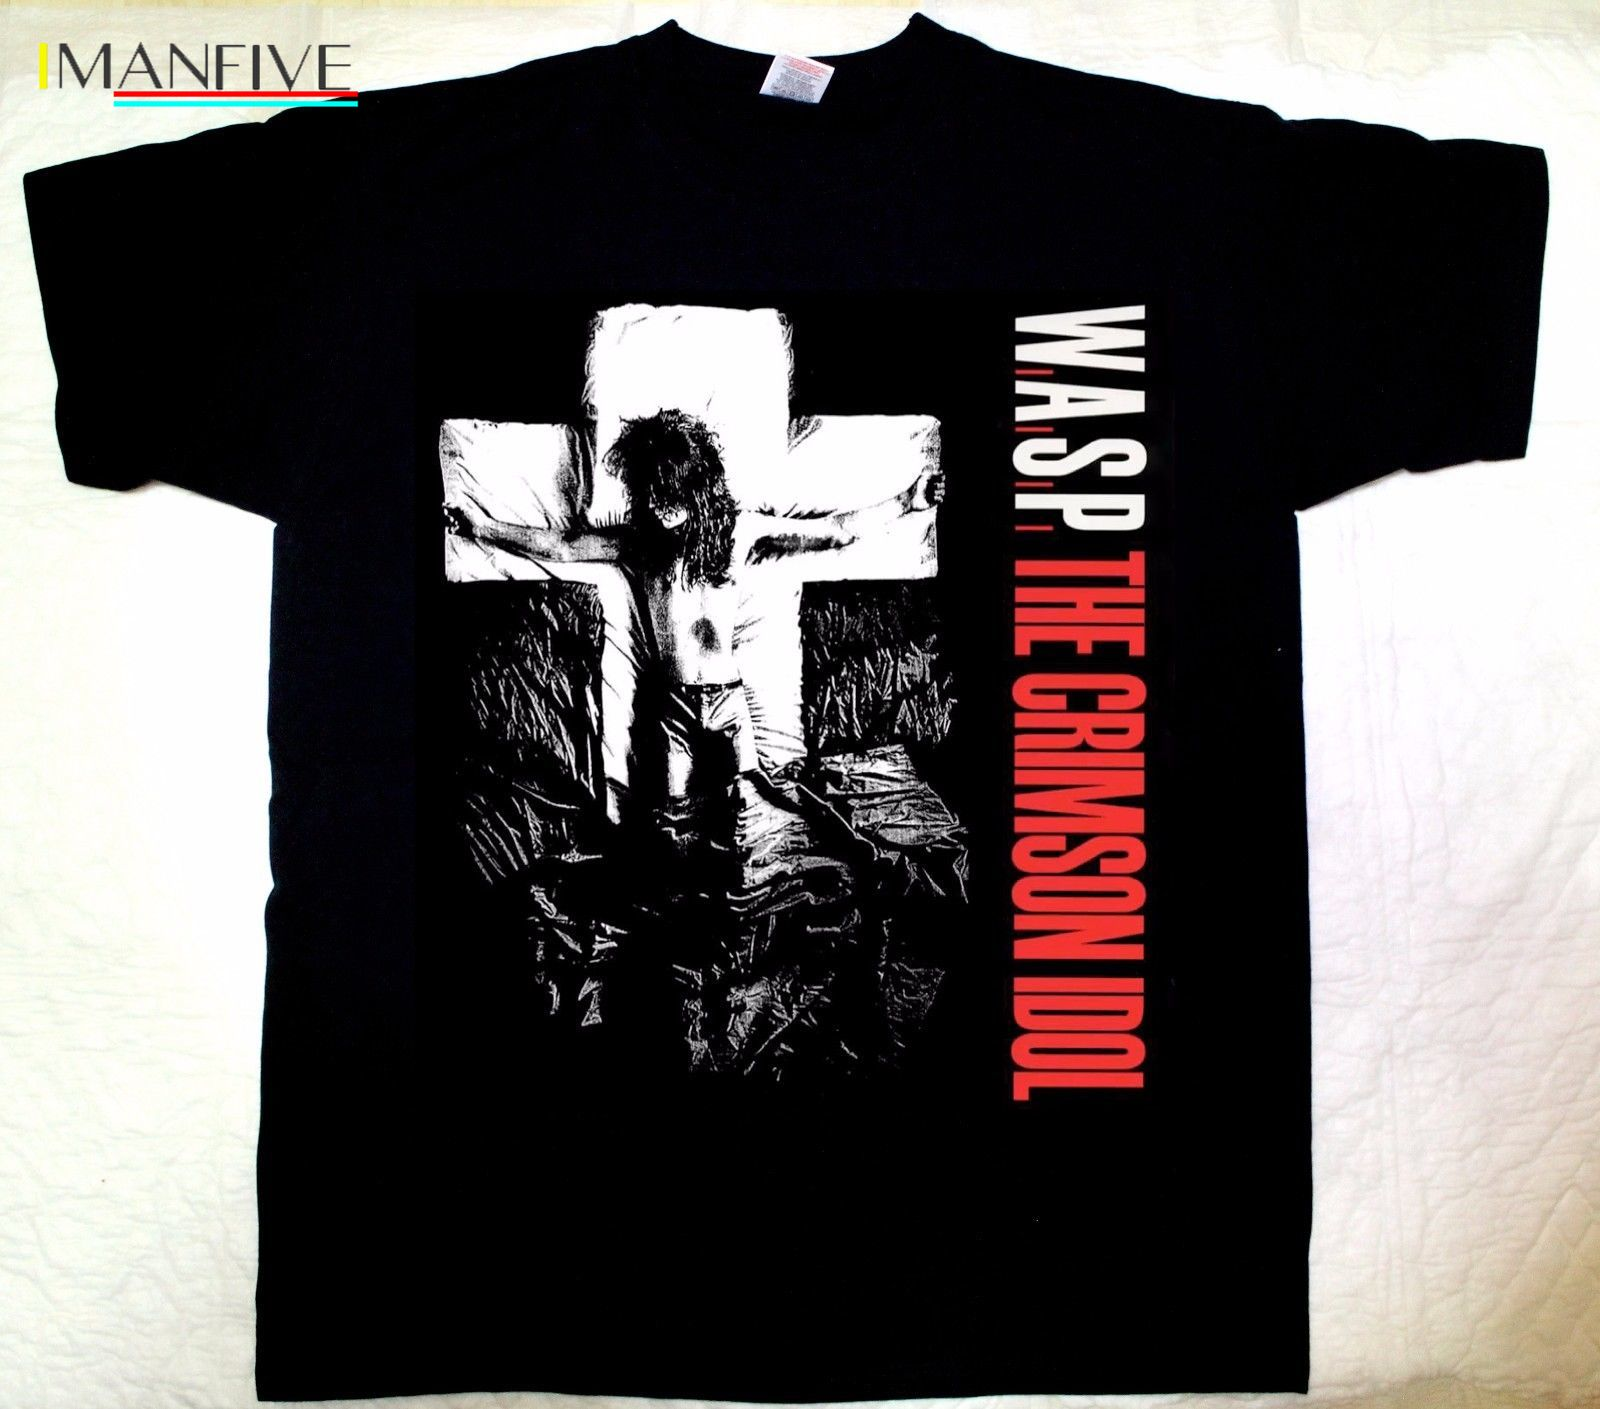 W A S P CRIMSON IDOL 39 92 HEAVY METAL BAND WASP TWISTED SISTER NEW BLACK T SHIRT 2019 Hot Sale New Men 39 S T Shirt in T Shirts from Men 39 s Clothing